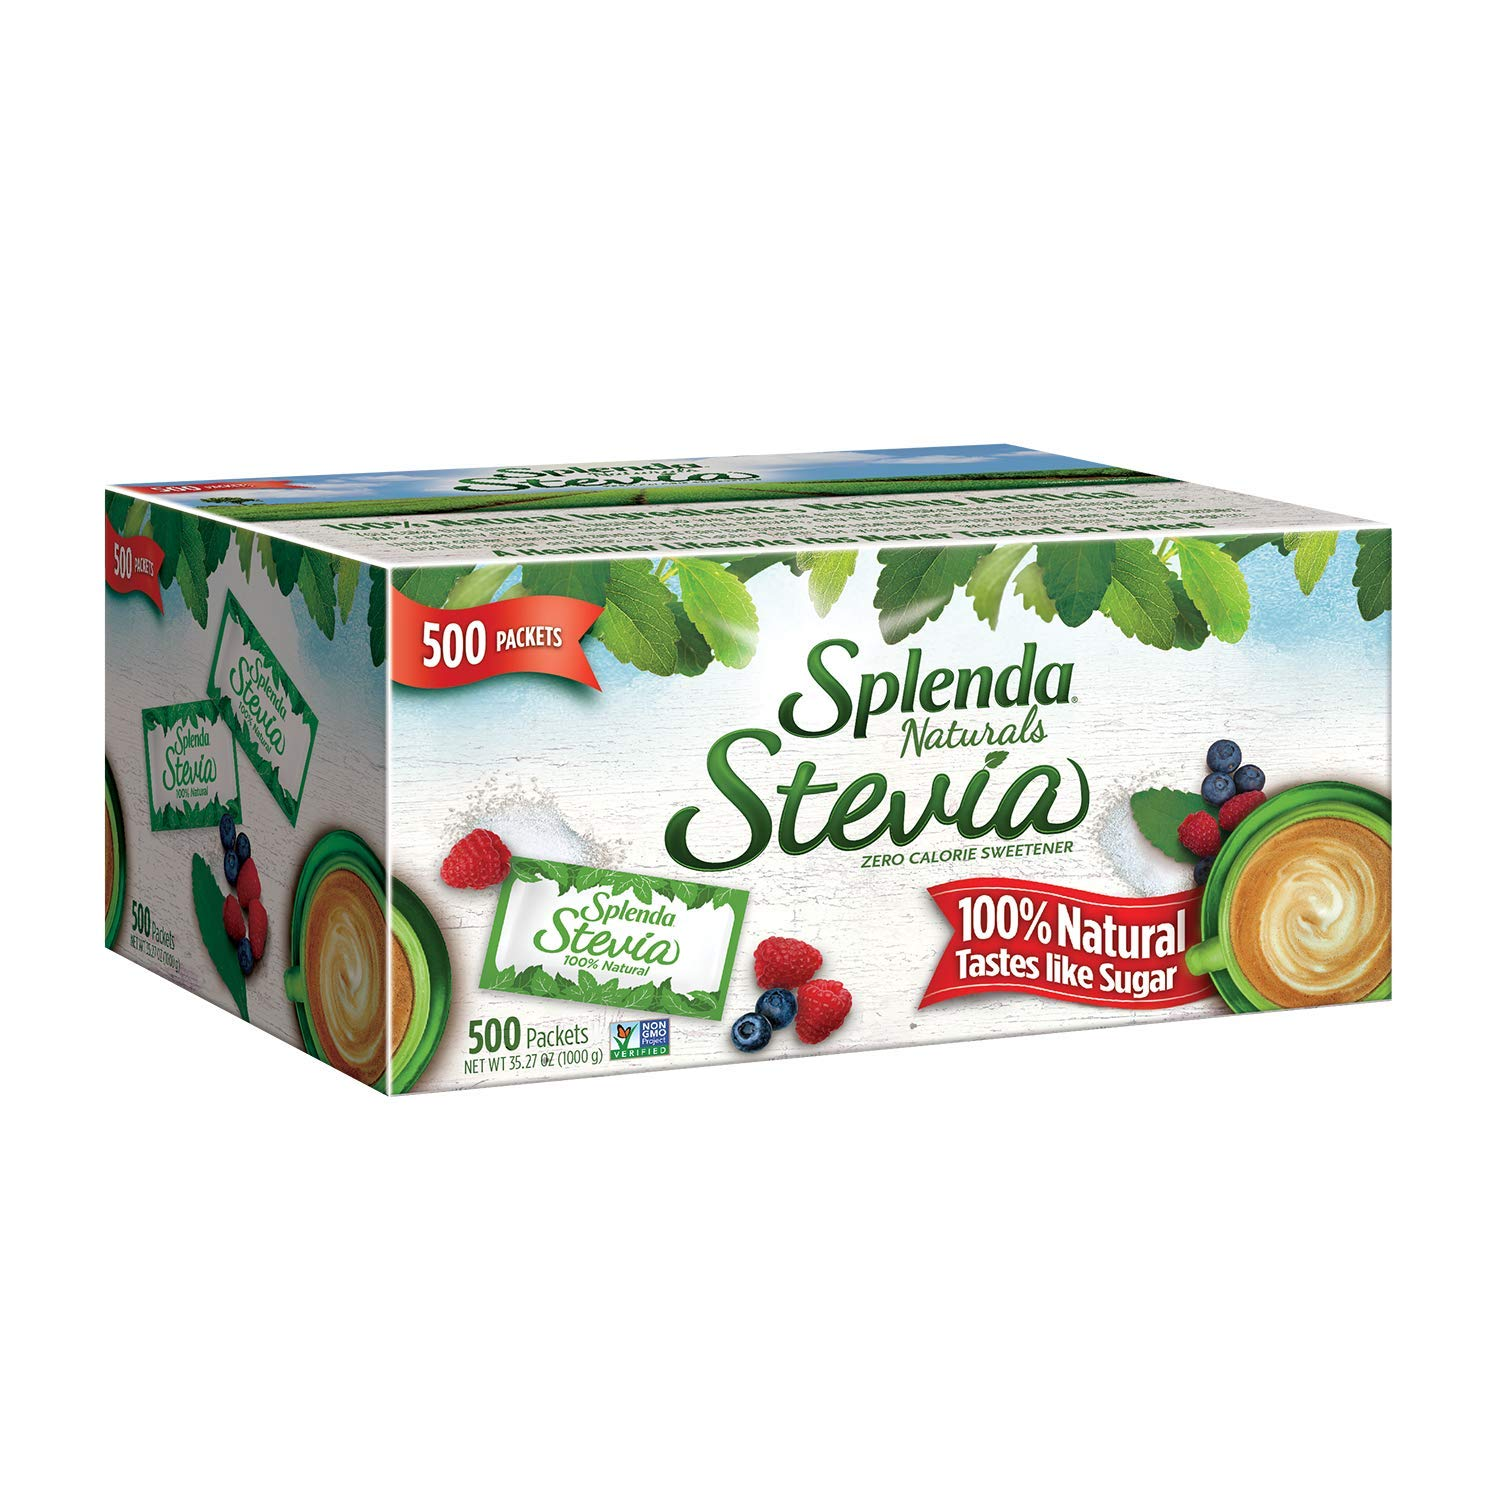 Splenda Naturals Stevia Sweetener Packets, 500 Ct -- Zero Calorie Stevia Sweetener. 100% Natural, Nothing Artificial, Best Tasting Stevia, No Bitter Aftertaste. Taste of Sugar Without the Calories.